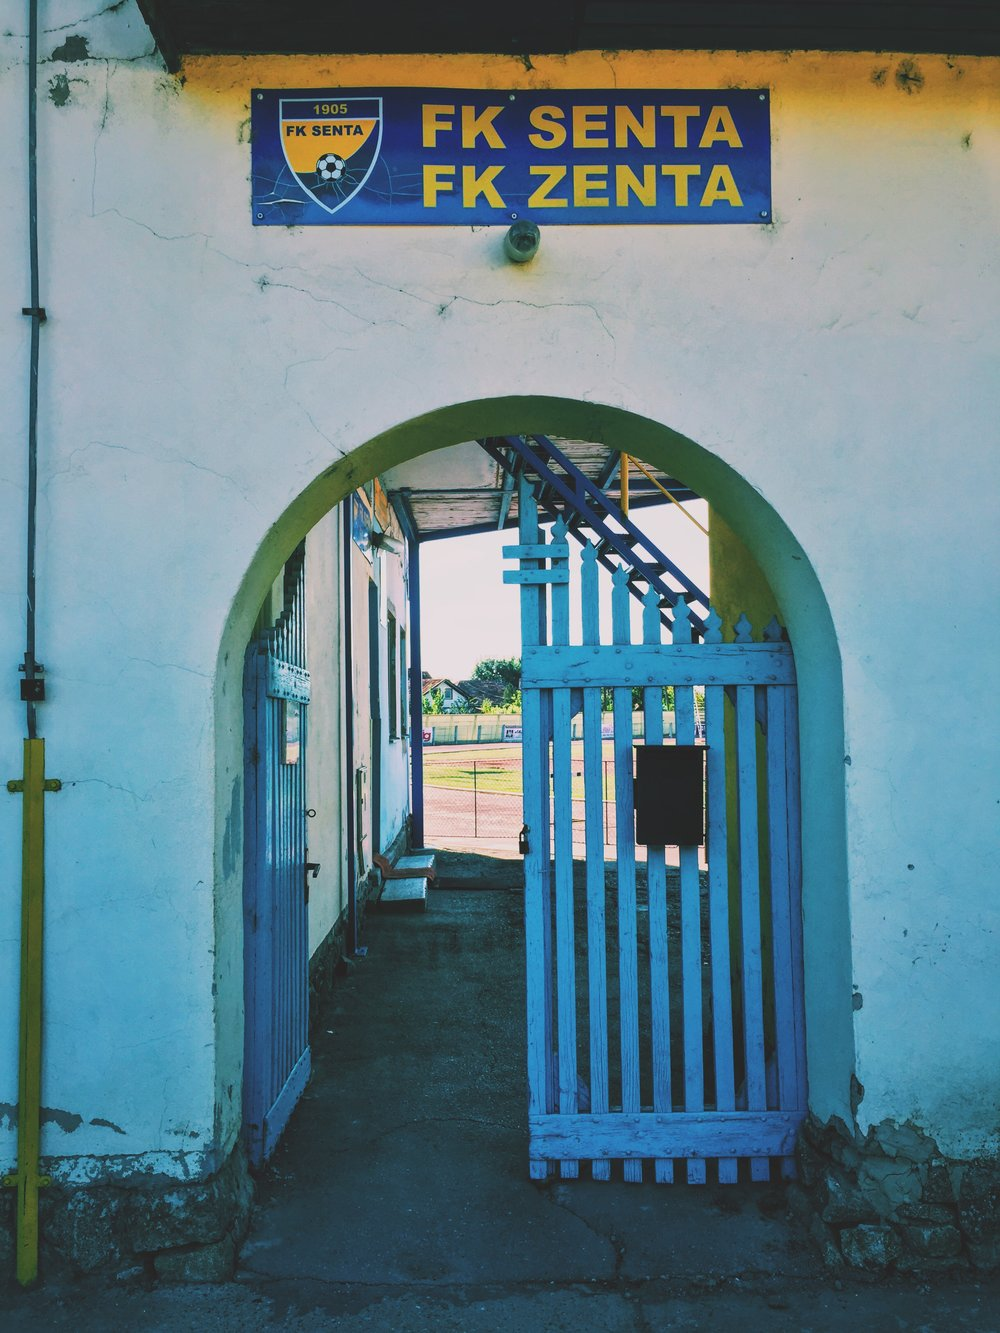 Senta, Serbia - Written in two languages, FK Senta in northern Serbia was also once part of Hungary during the second World War. The U-19 MNT met their French counterpart there during a a tournament in September, a team that included one of Zinedine Zidane's sons.